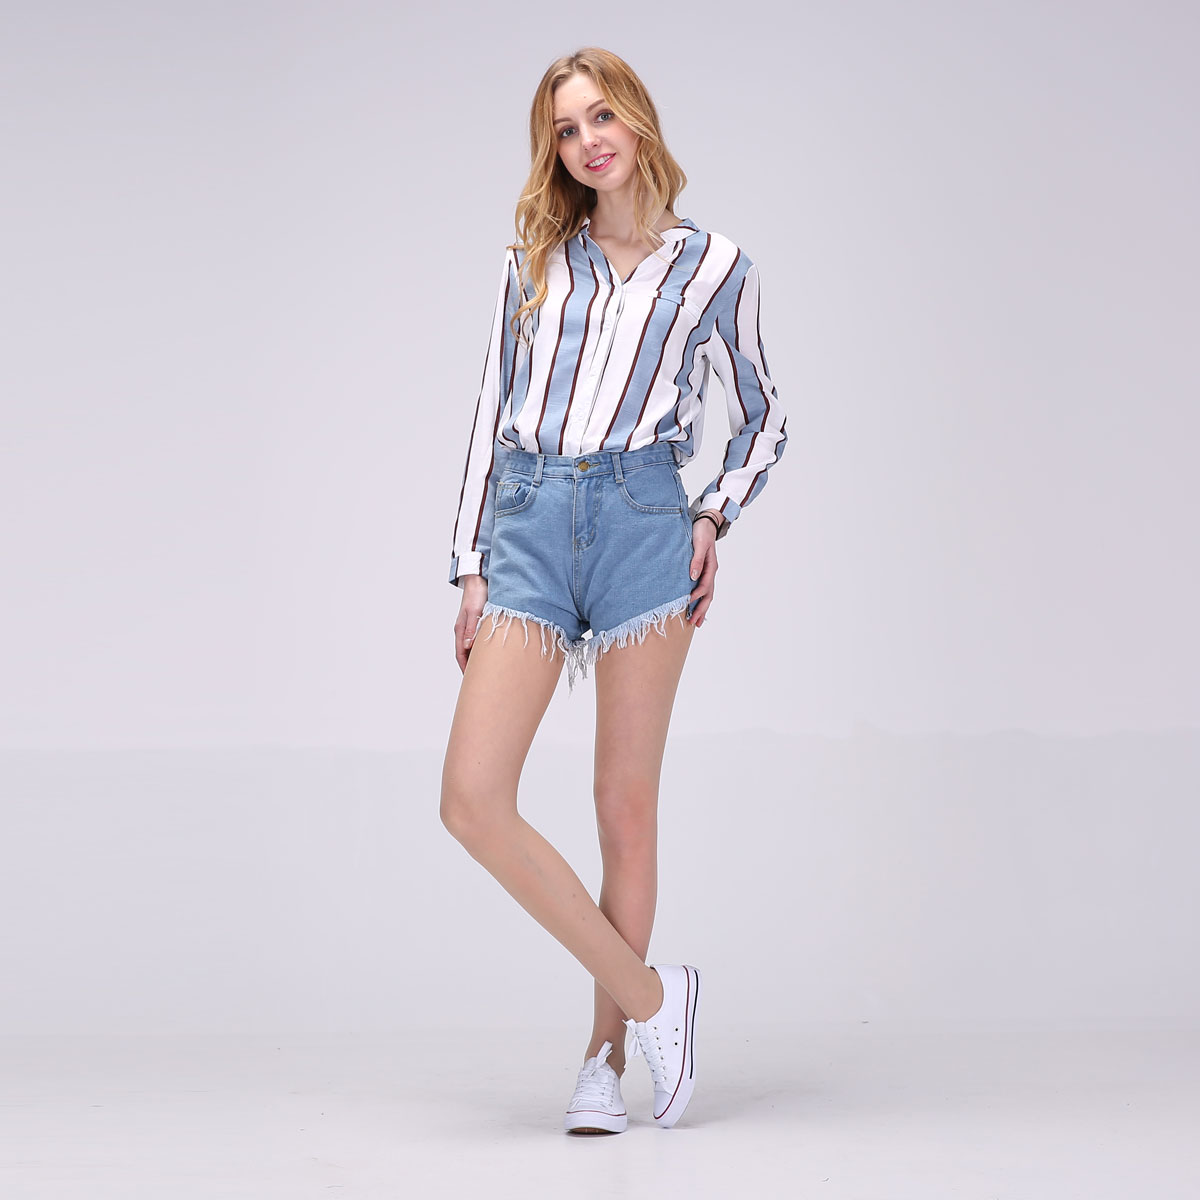 2017 Hot New Women Full Sleeve Blouses Striped Shirts Women Summer Tops Flare Sleeve Blouse Chemise Femme P Size 12